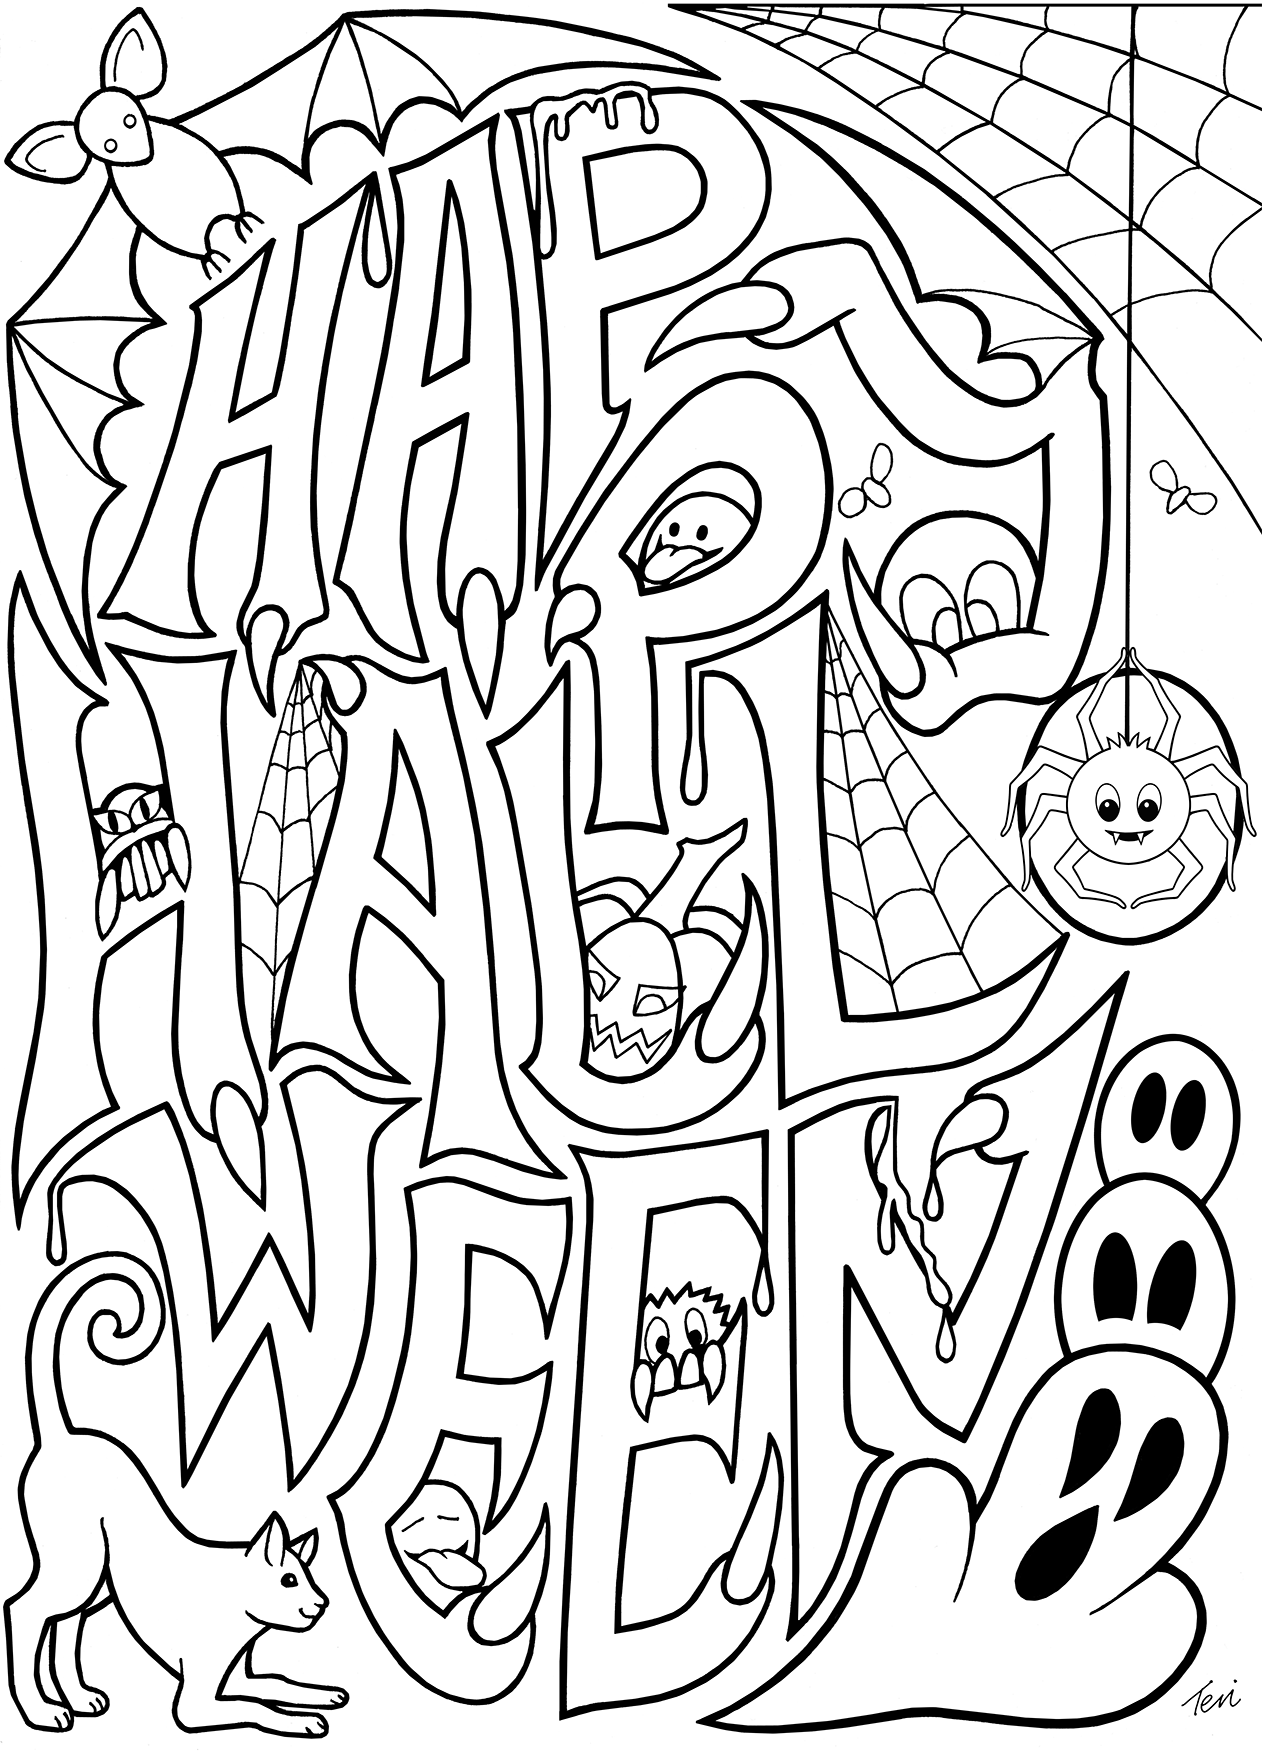 Colouring in sheets for halloween - Free Adult Coloring Book Pages Happy Halloween By Blue Star Coloring